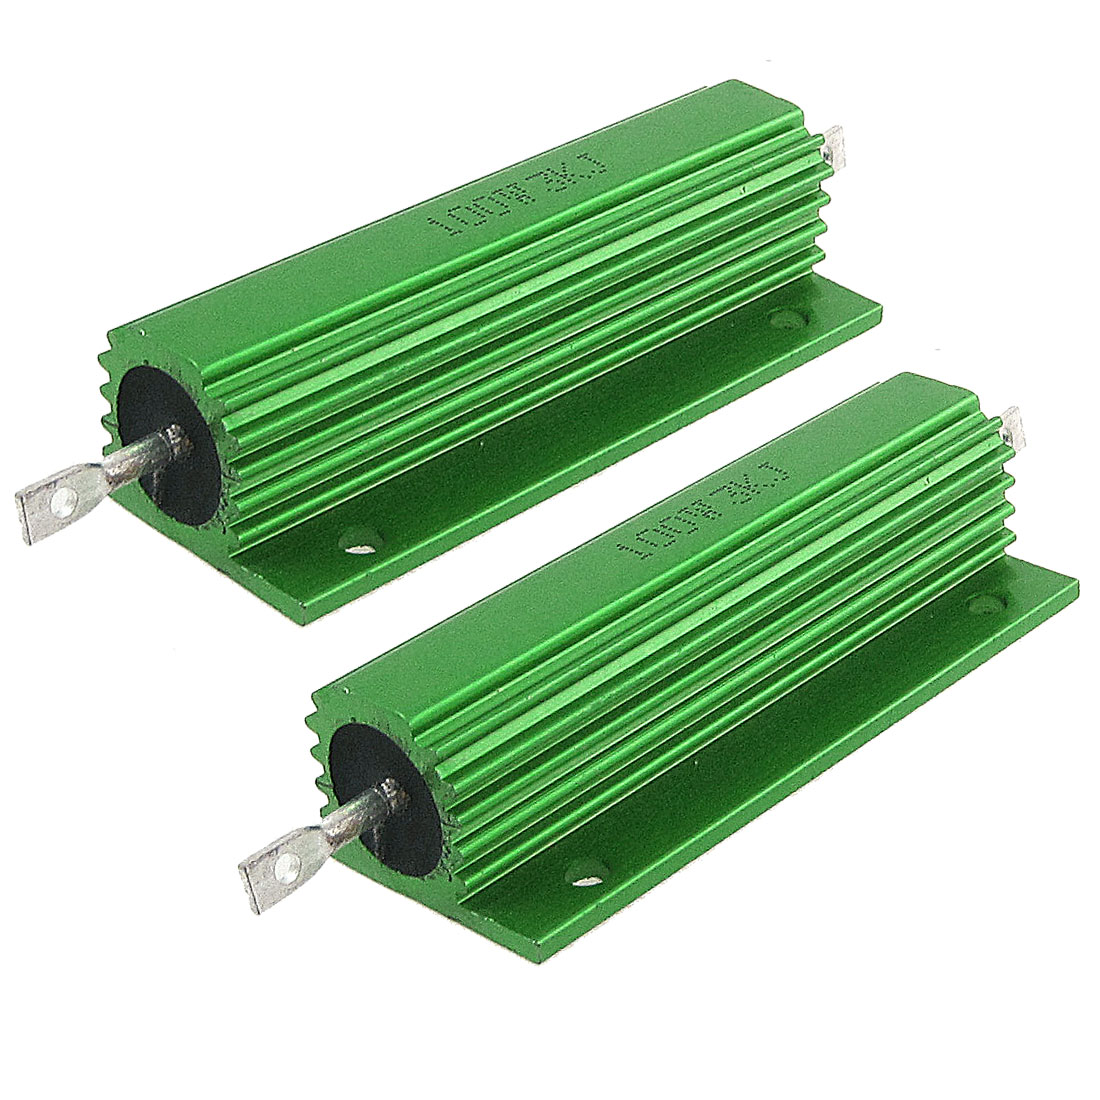 2 Pcs Chasis Mounted Green Aluminum Clad Wirewound Resistors 100W 3K Ohm 5%